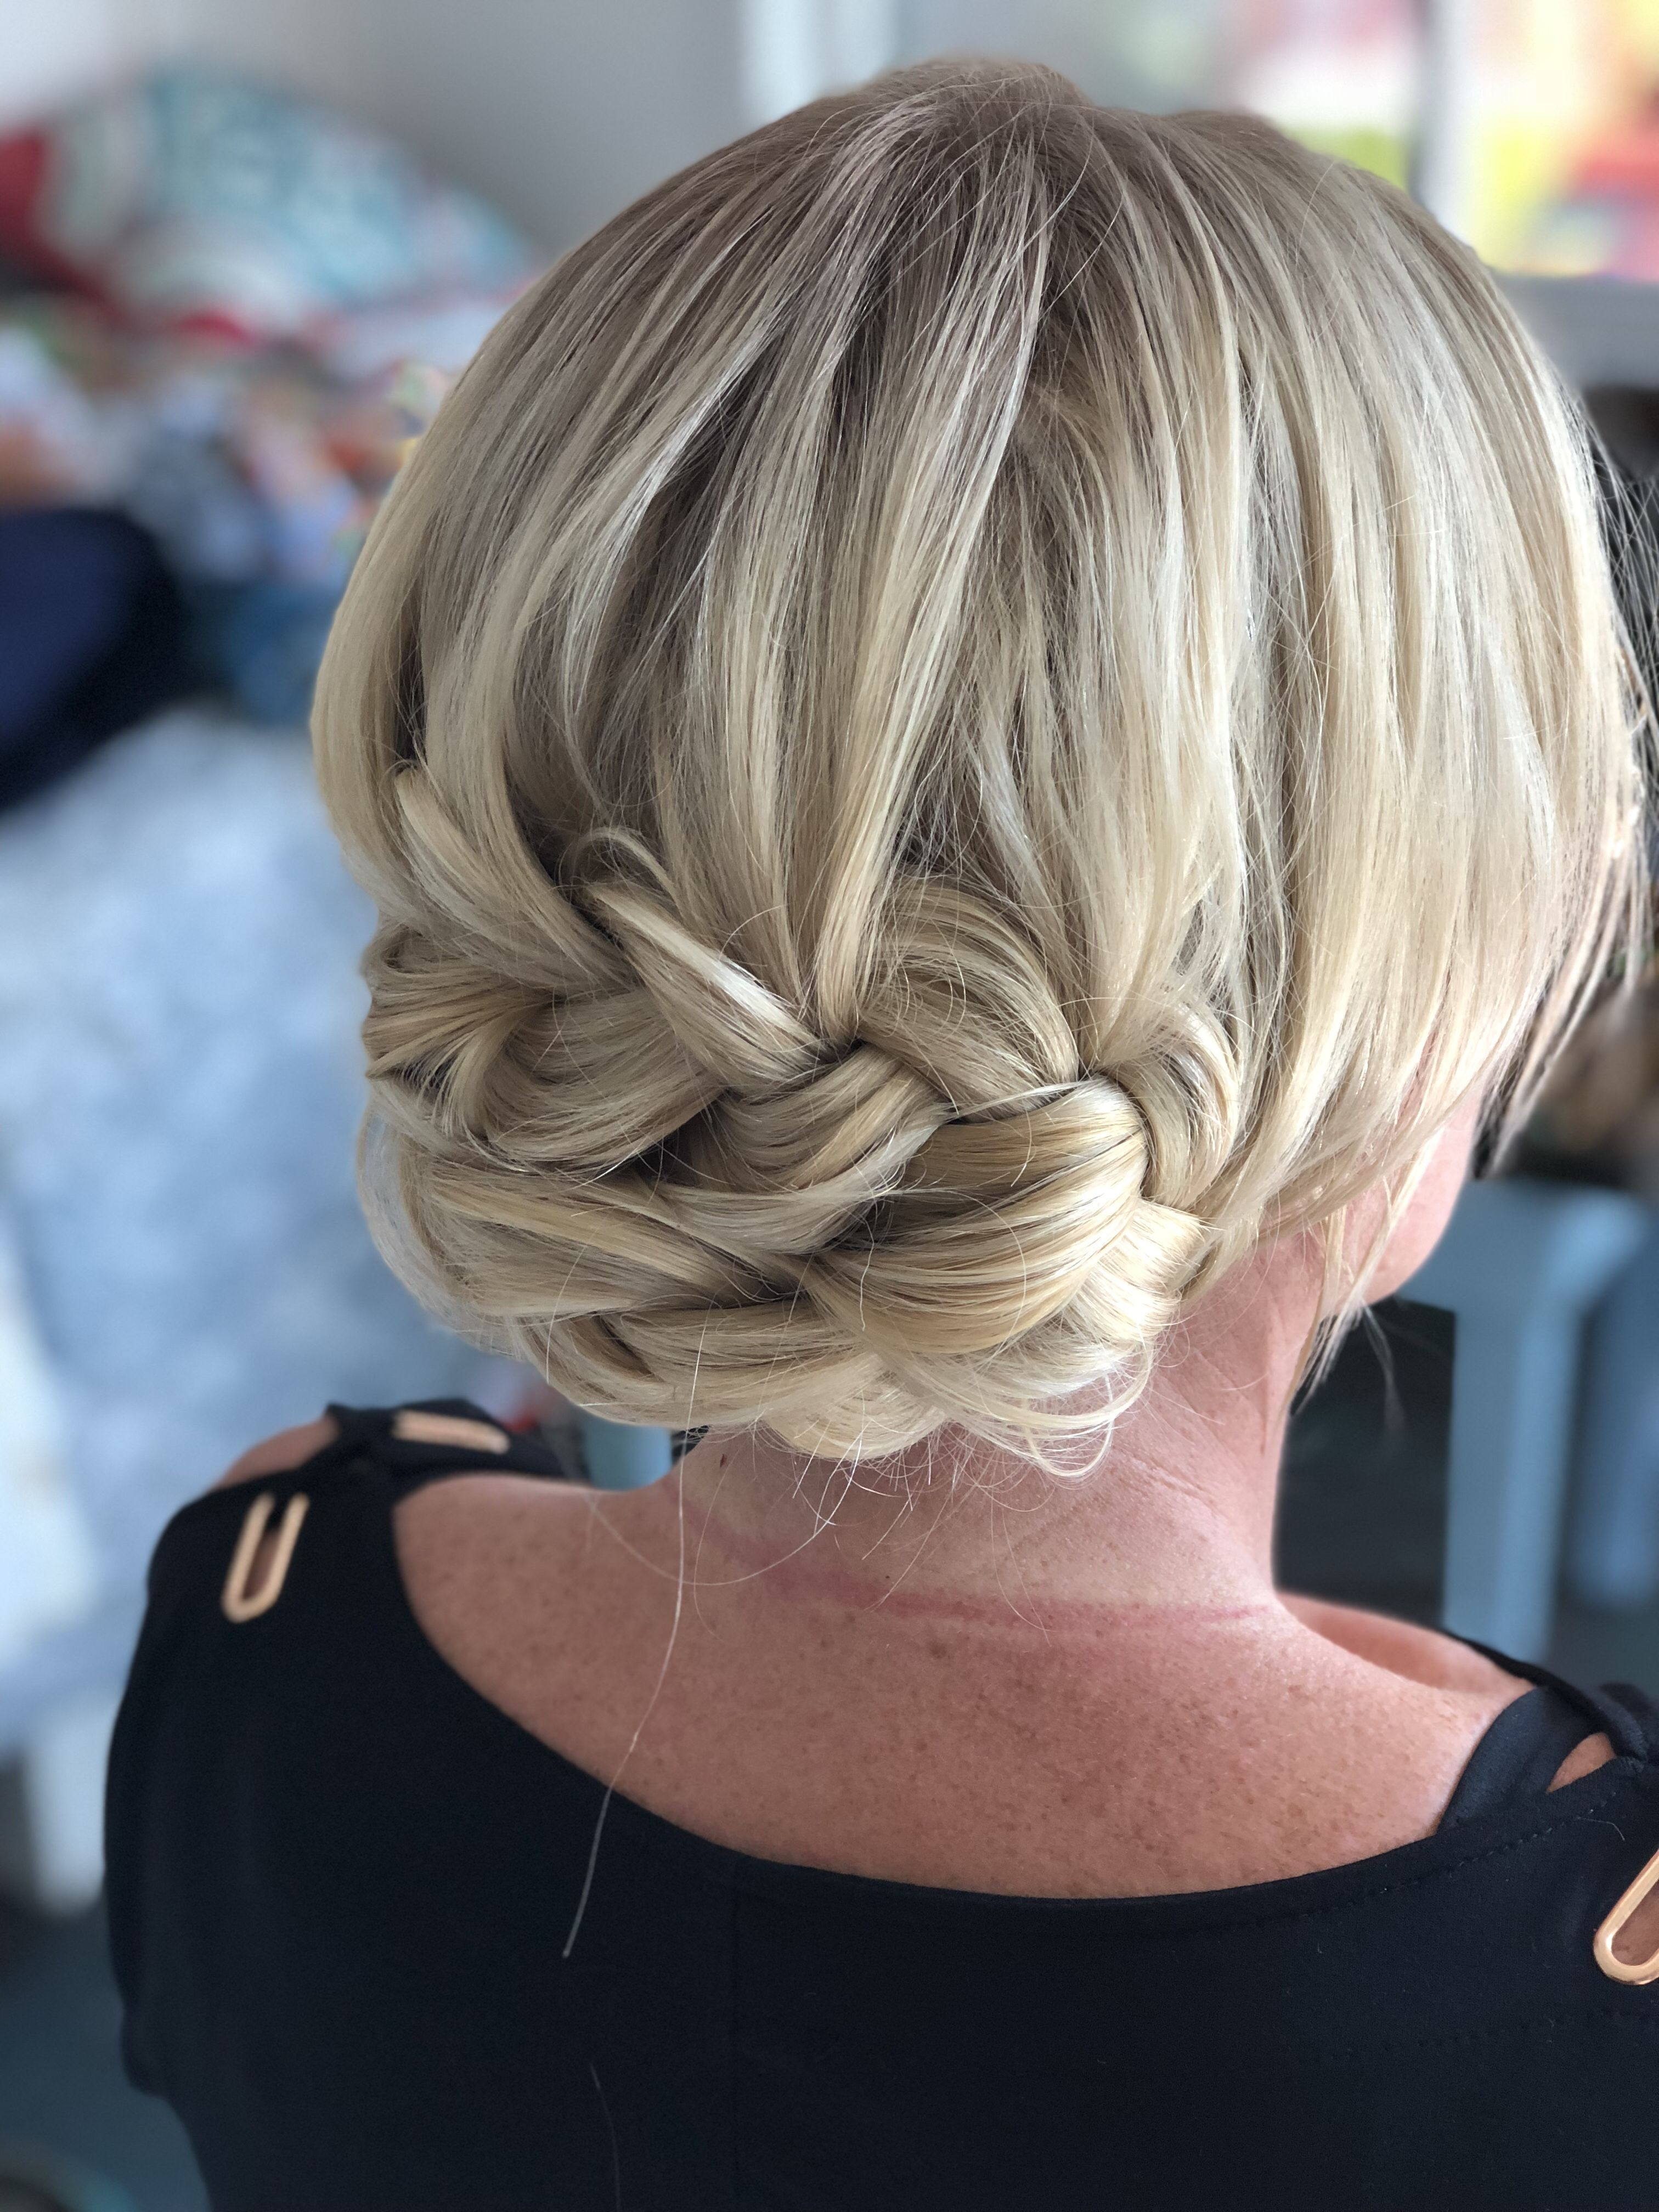 80 Of My Brides Wear Extensions To Make Their Hairstyles Fuller And